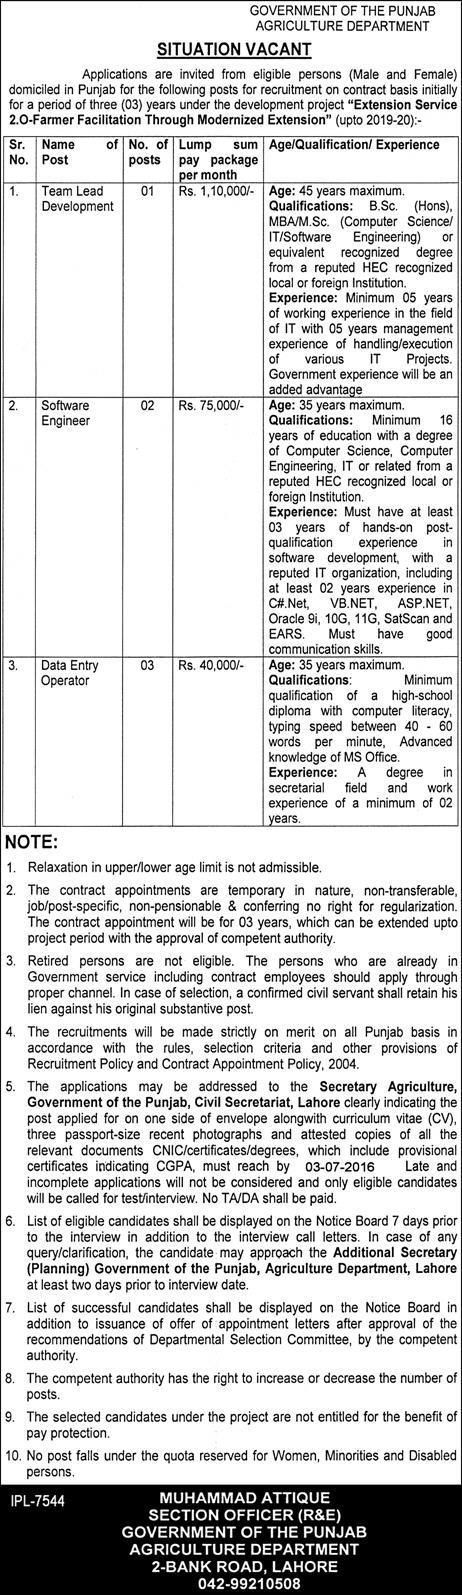 Government of the Punjab Agriculture Department JOB